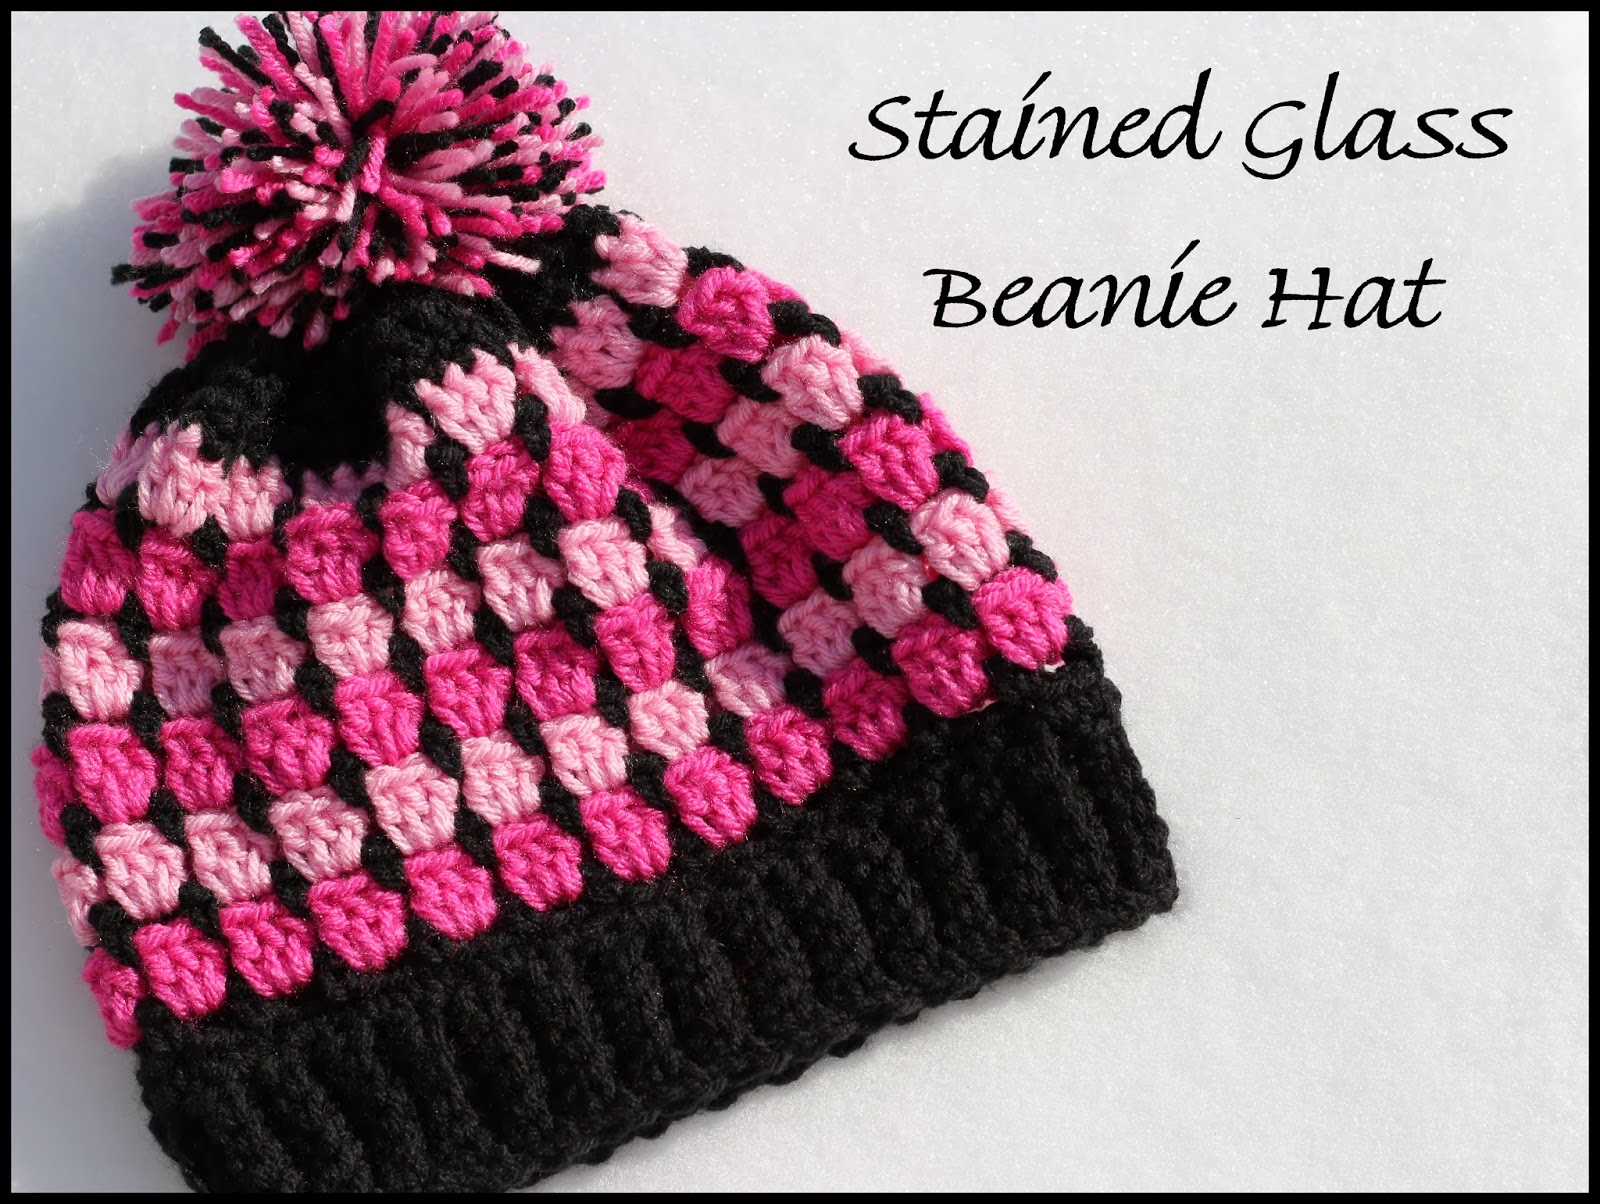 Crochet Supernova: Stained Glass Beanie Hat ~FREE PATTERN~